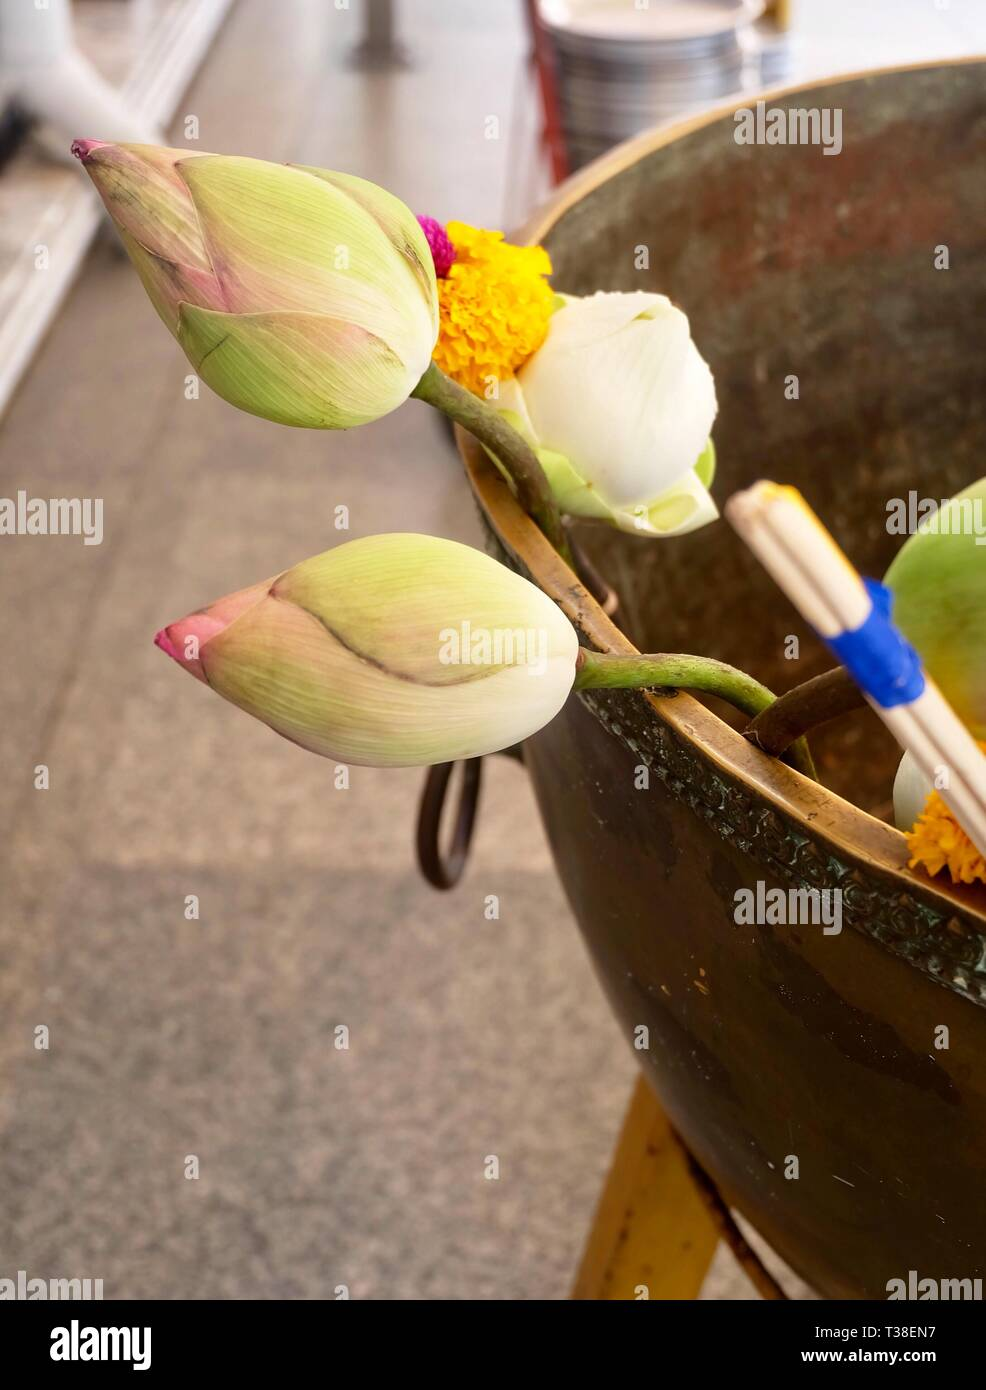 Buddhist Putting Incense Sticks And Lotus Flowers In Religion Bowl To Worship Pay Respect And Make Merit With The Buddha In The Temple Stock Photo Alamy